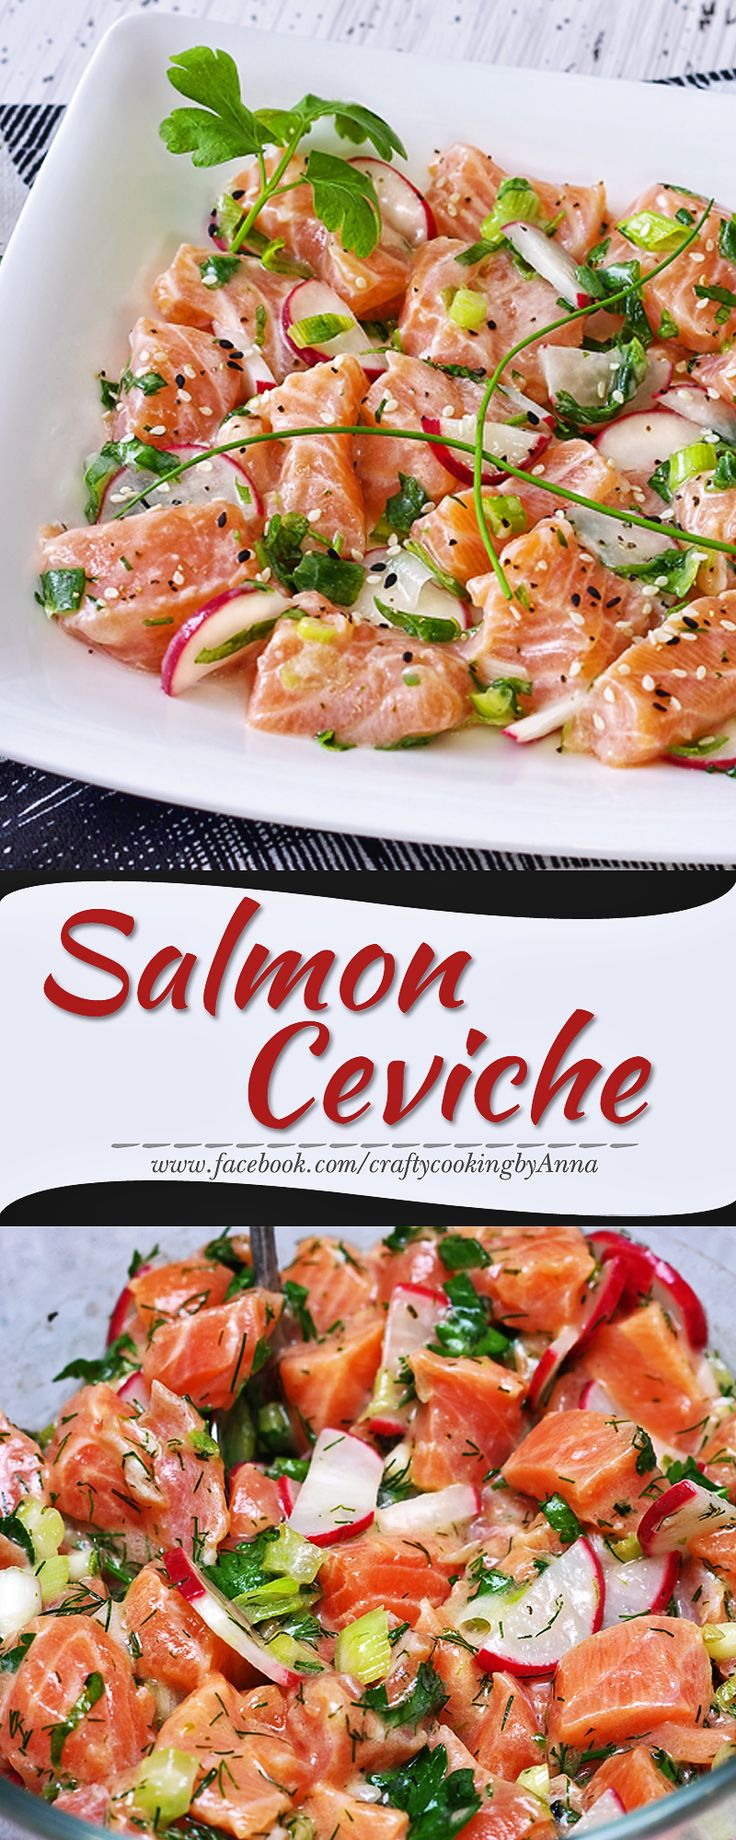 Salmon Ceviche! #Easy #Delicious